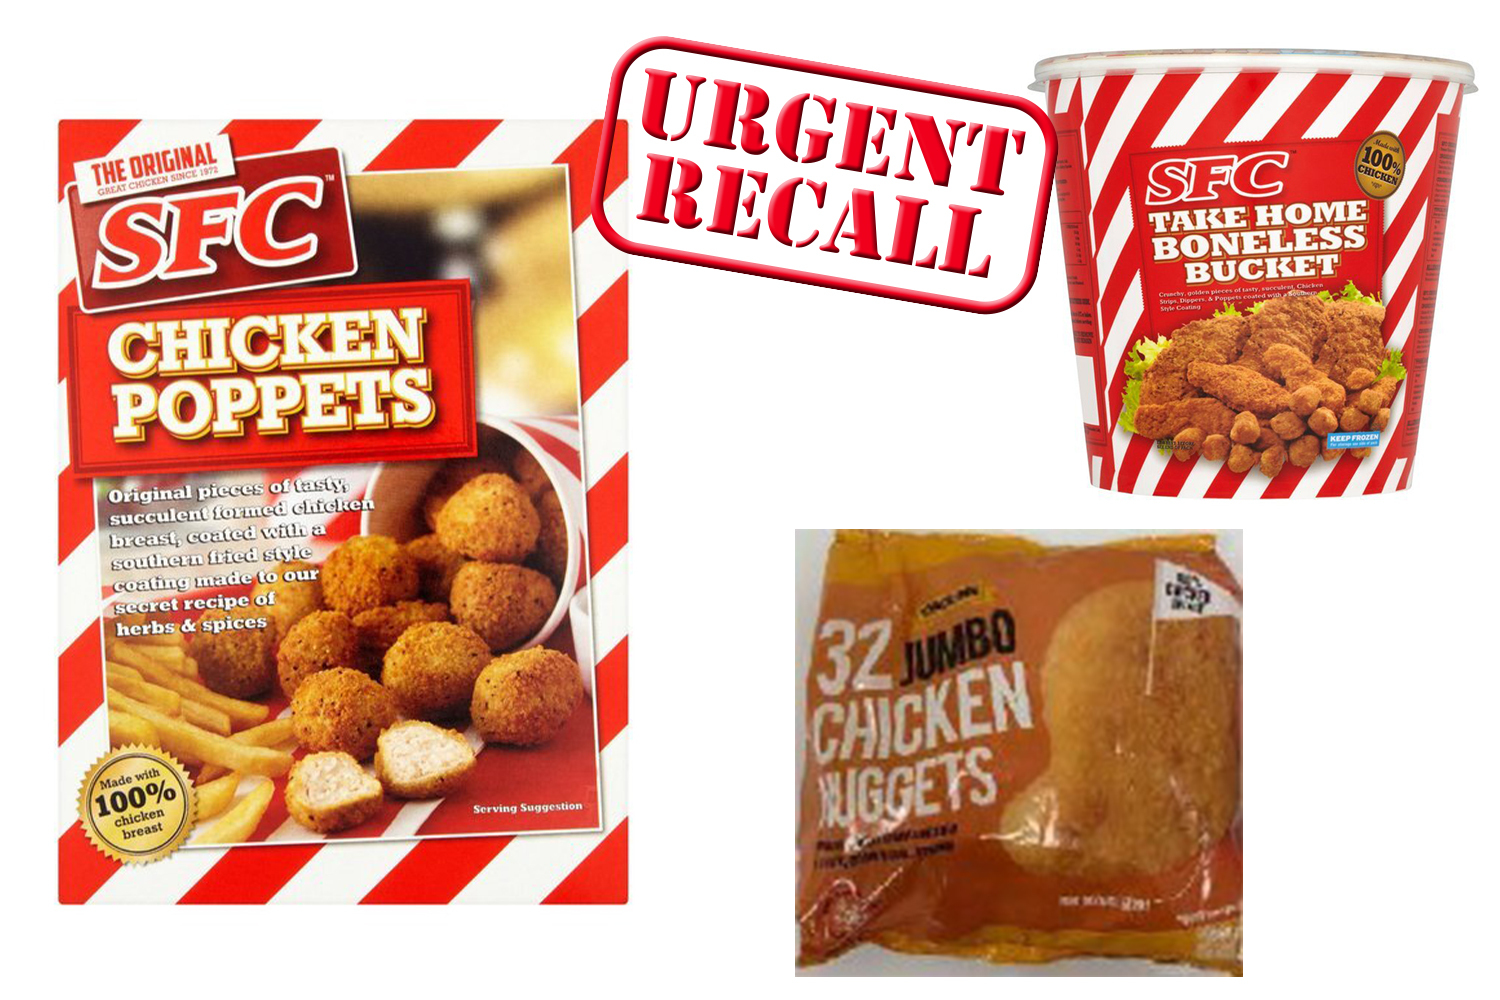 The above products have been recalled over salmonella fears